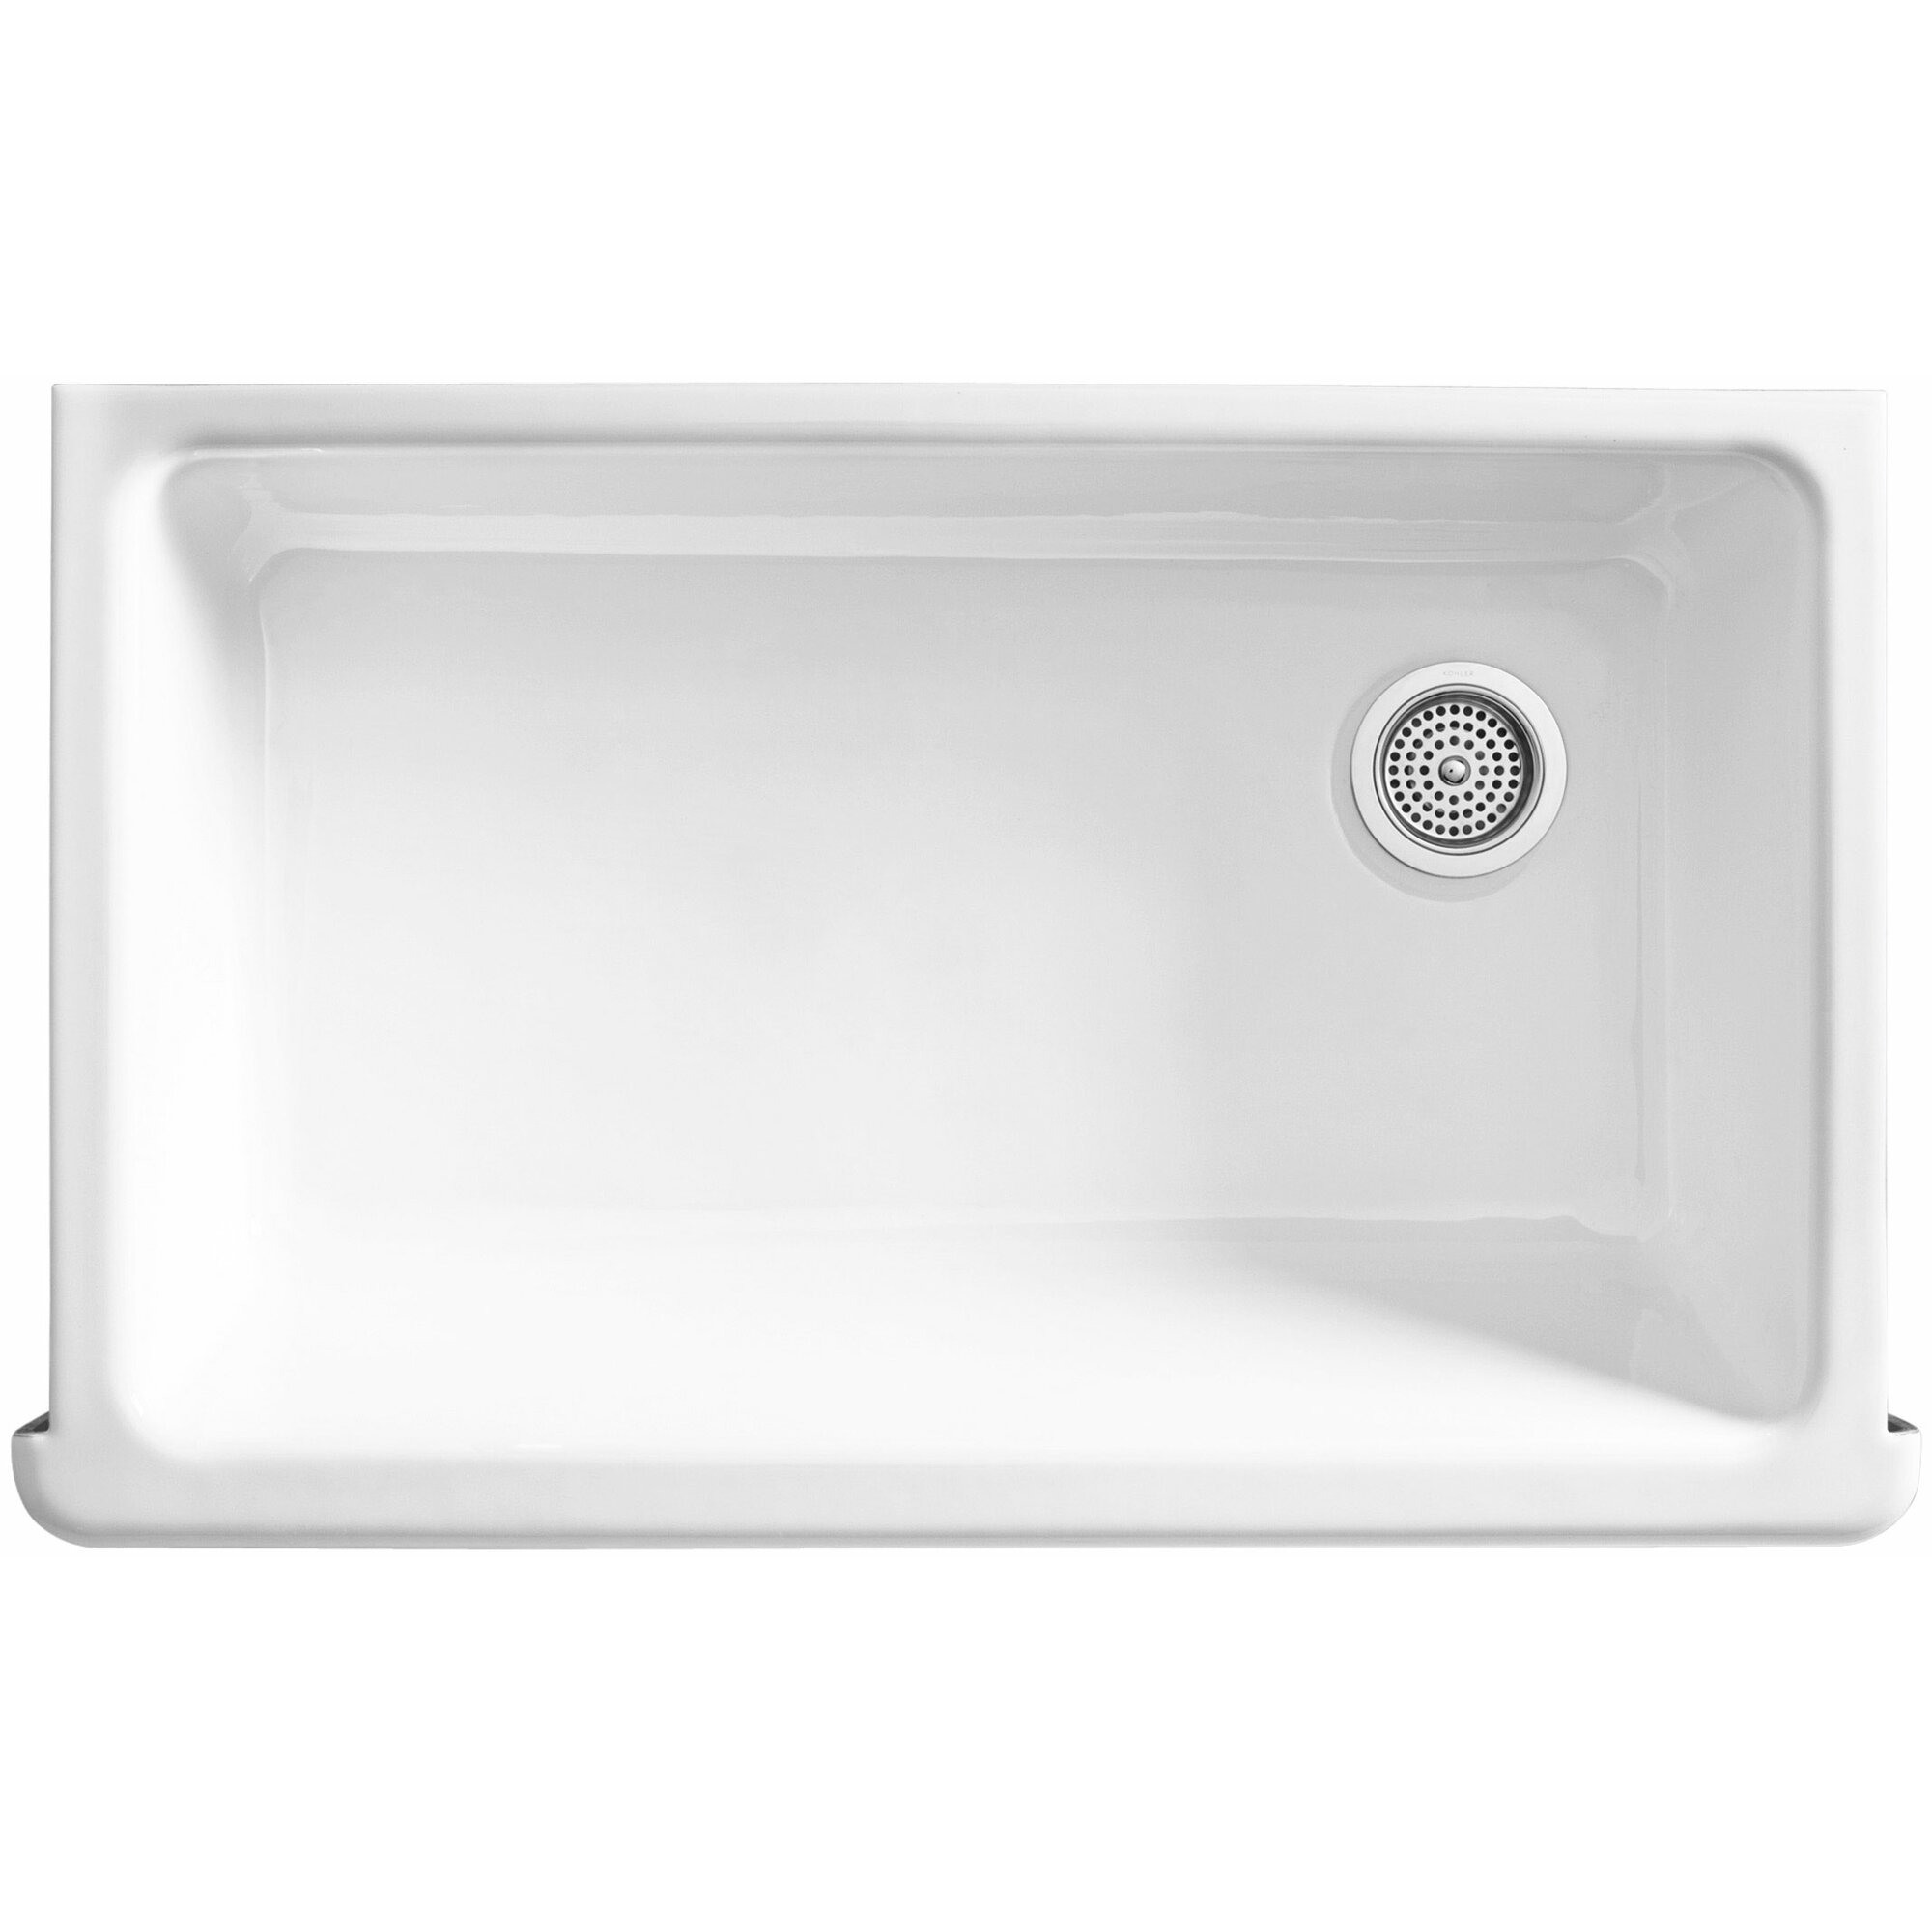 whitehaven 3569 x 2156 farmhouse single bowl kitchen sink - White Single Basin Kitchen Sink